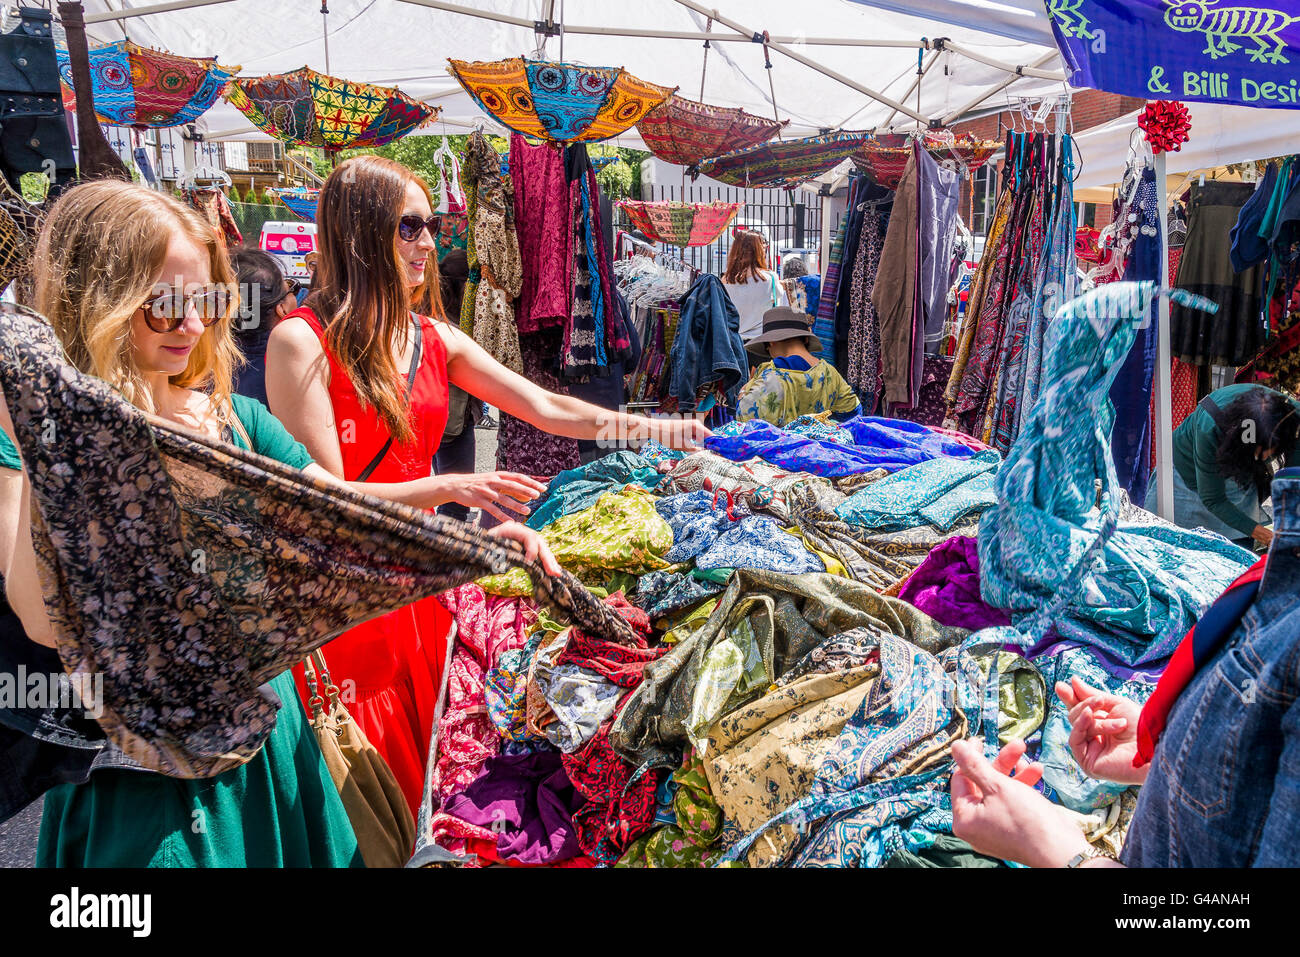 Women peruse clothes in Market stall, Vancouver, British Columbia, Canada, - Stock Image